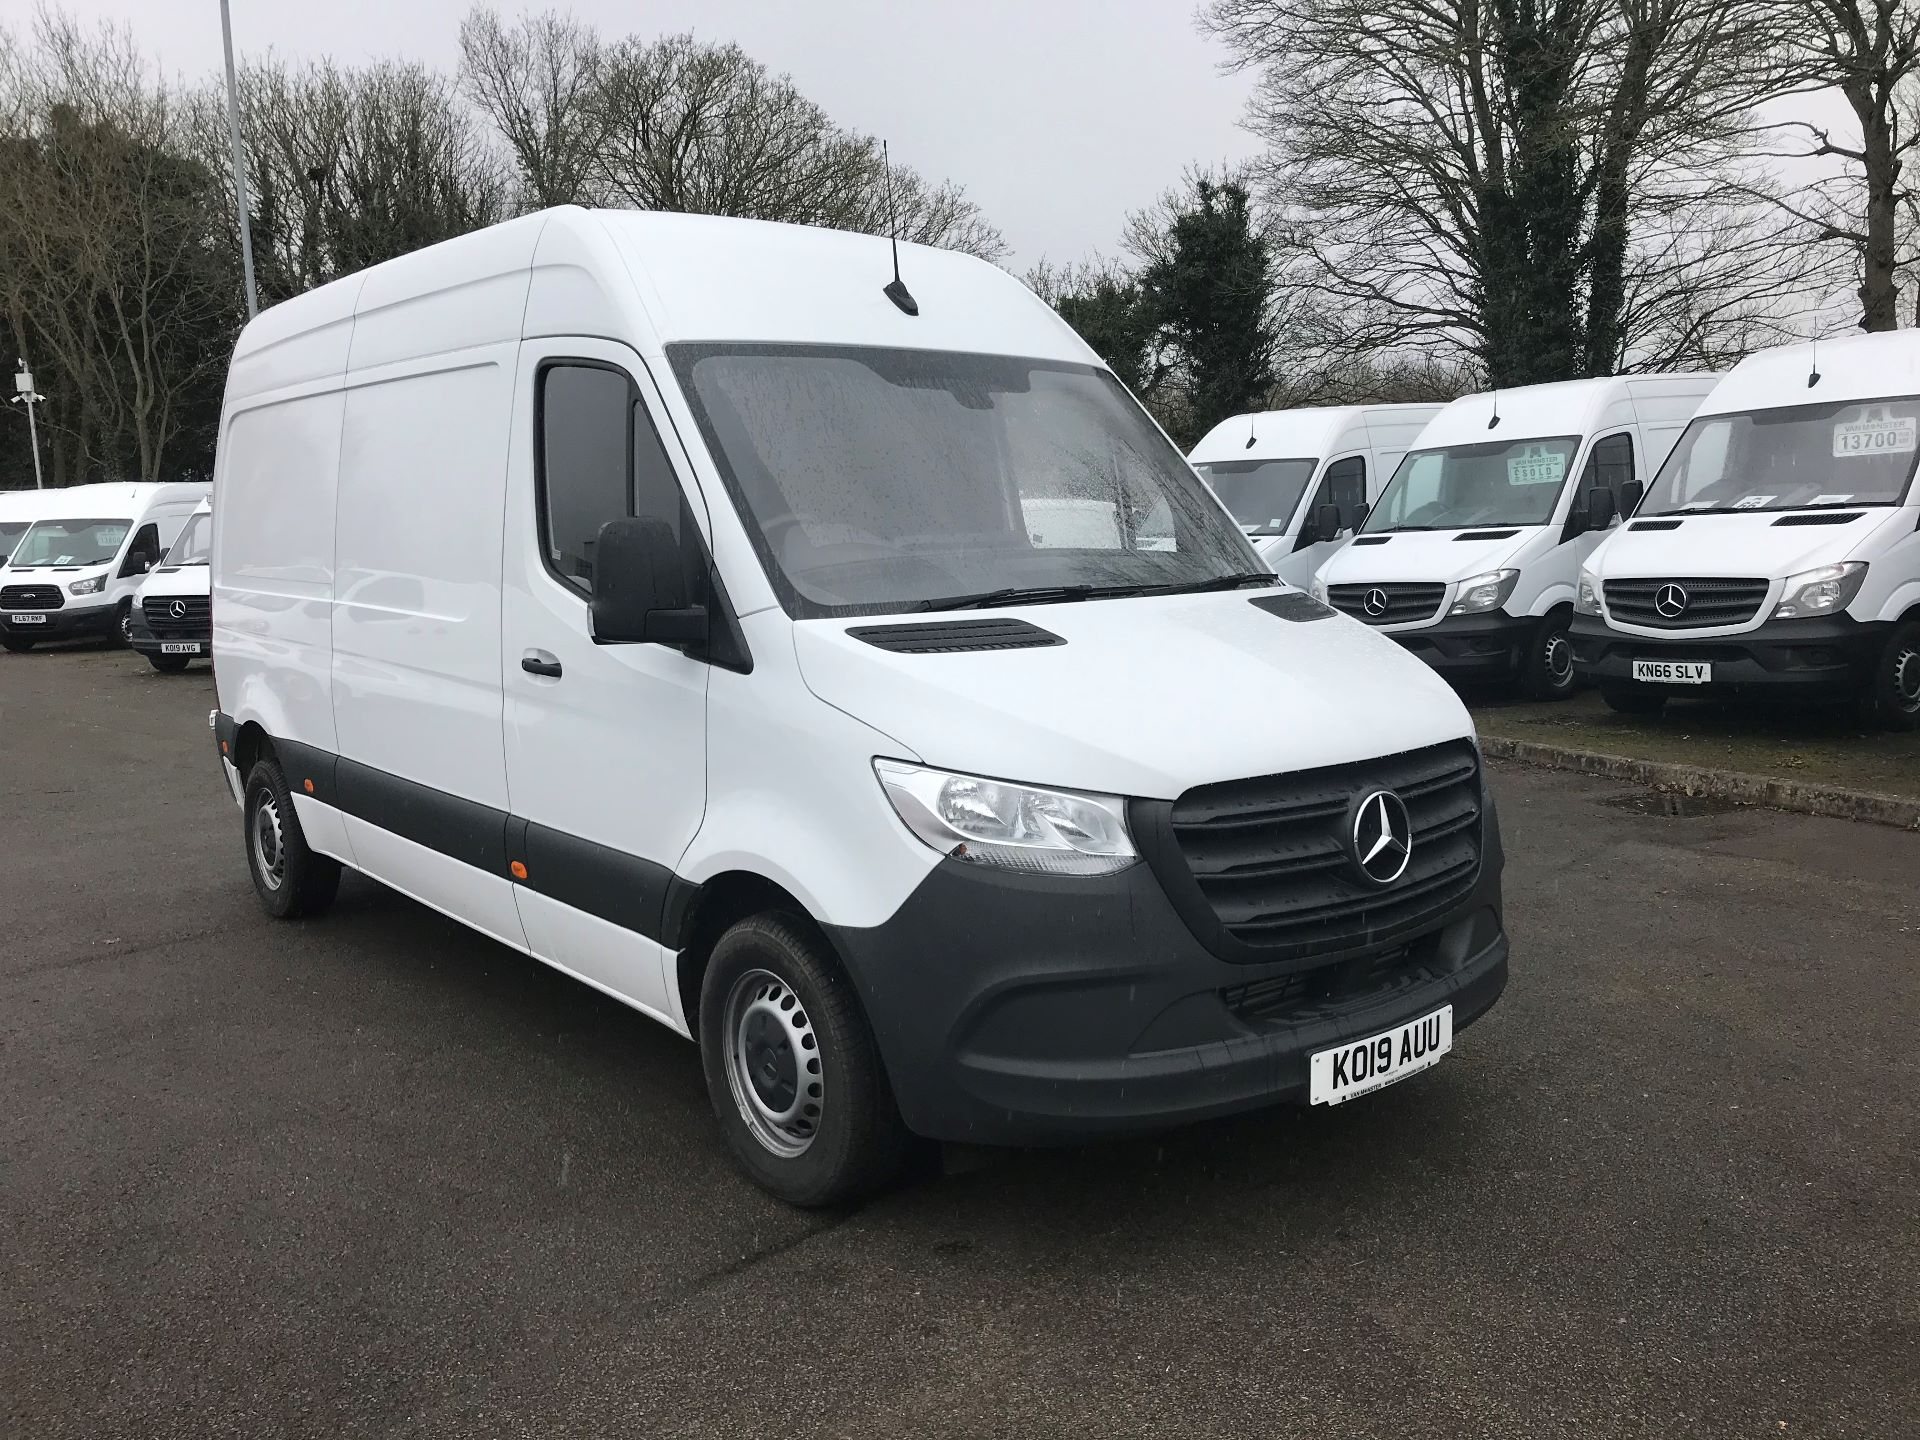 2019 Mercedes-Benz Sprinter 314 CDI MWB 3.5t 143PS EURO 6 (KO19AUU)